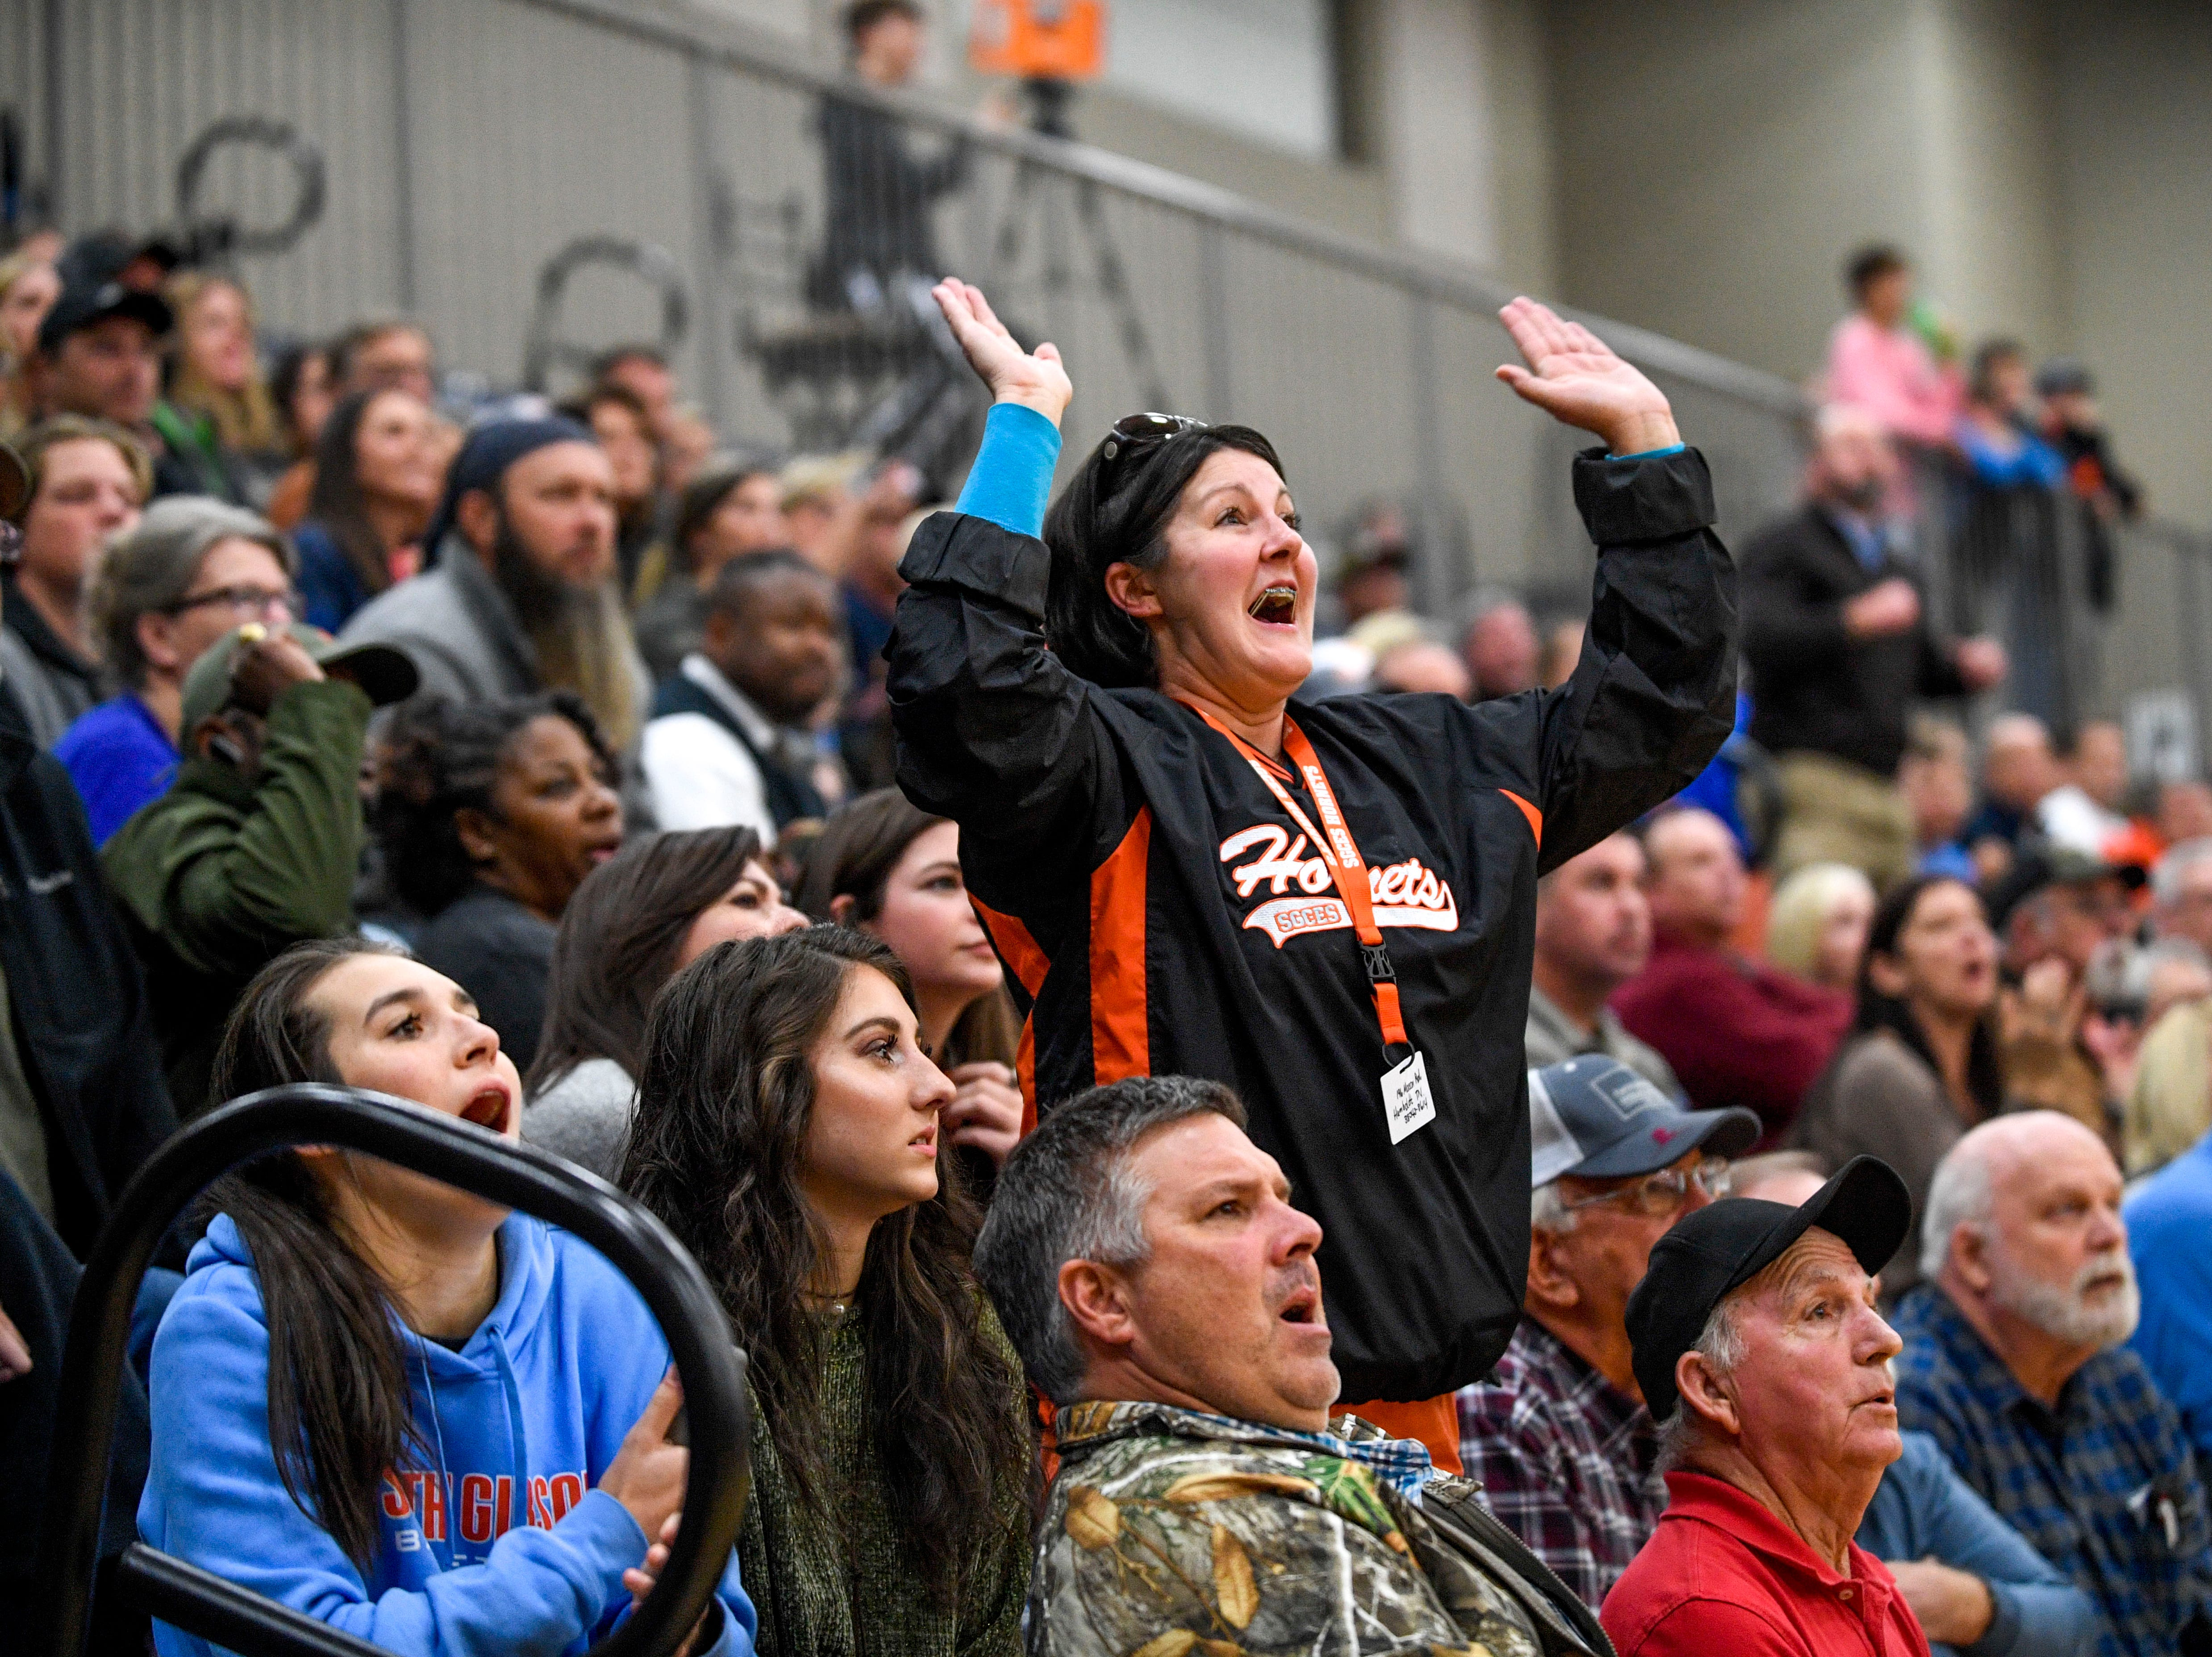 South Gibson fans stand up and cheer for their team in a TSSAA boys basketball game between South Gibson and Haywood High Schools at South Gibson High School in Medina, Tenn., on Tuesday, Nov. 27, 2018.